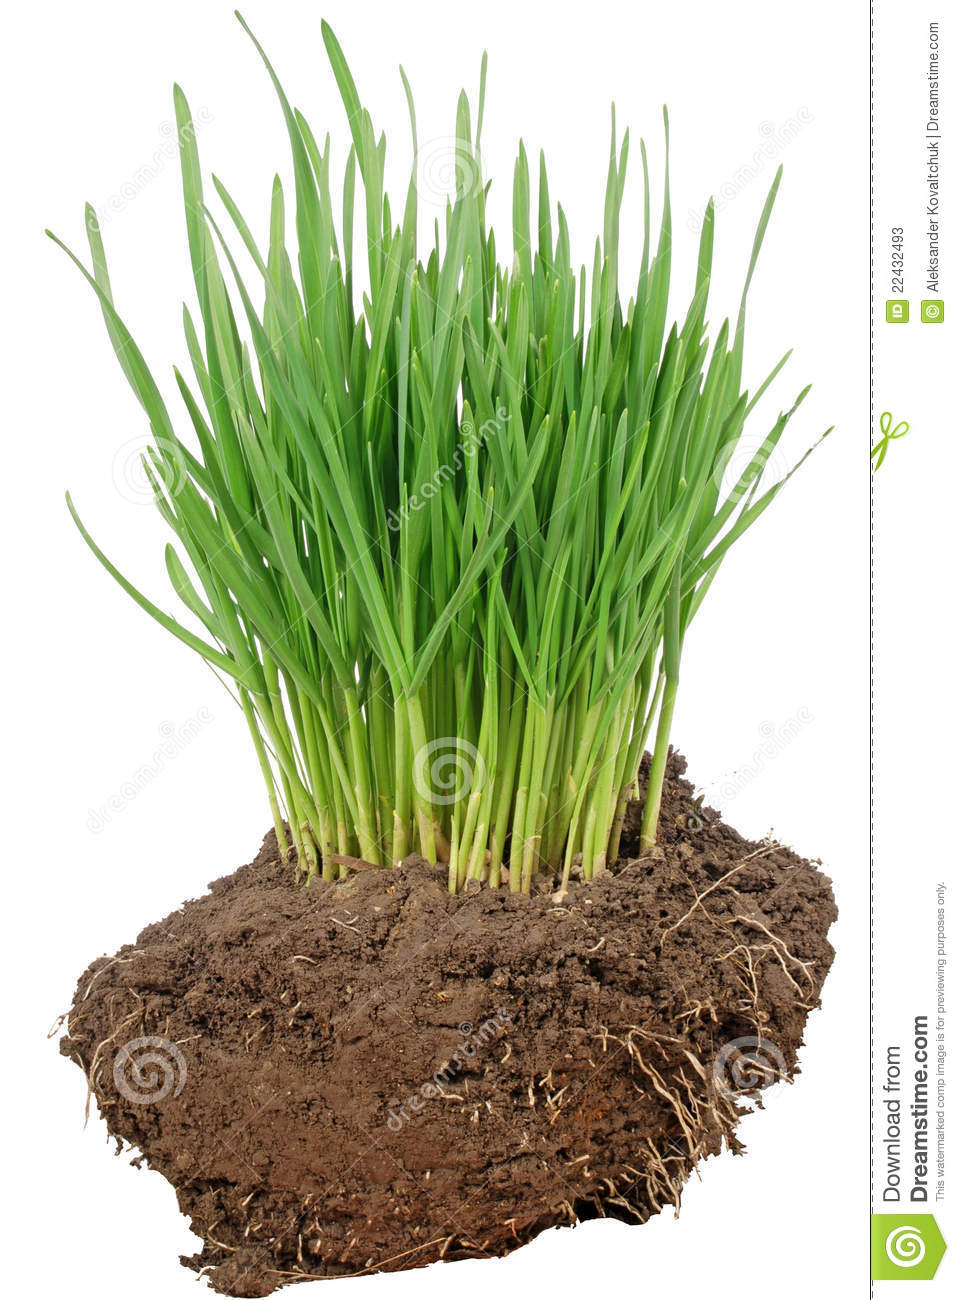 Green grass and soil stock photos image 22432493 for Soil and green